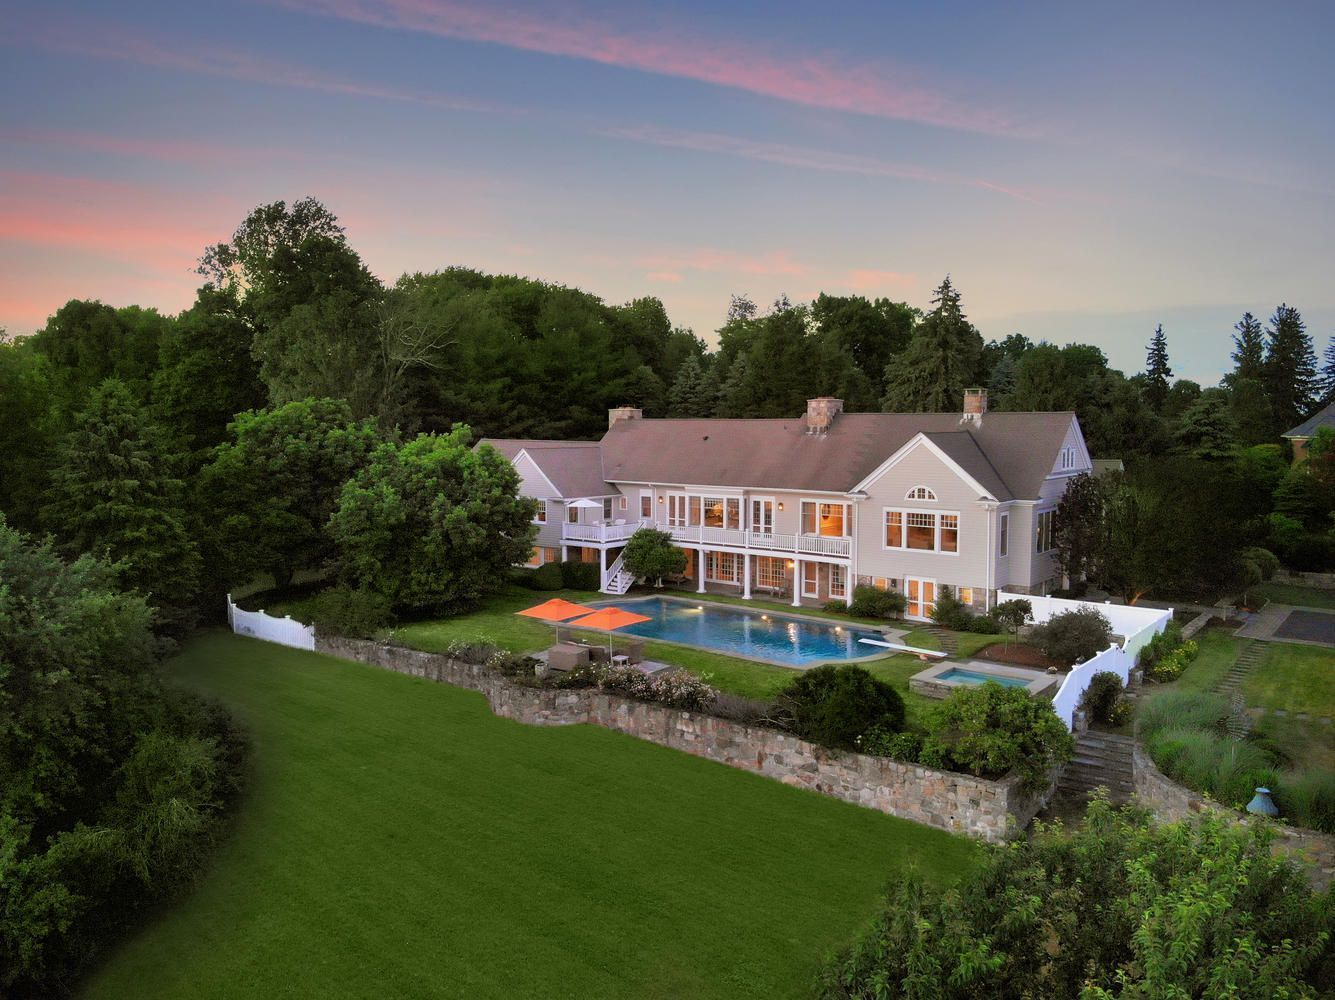 994 Oenoke Ridge New Canaan, CT 06840 - Image 1